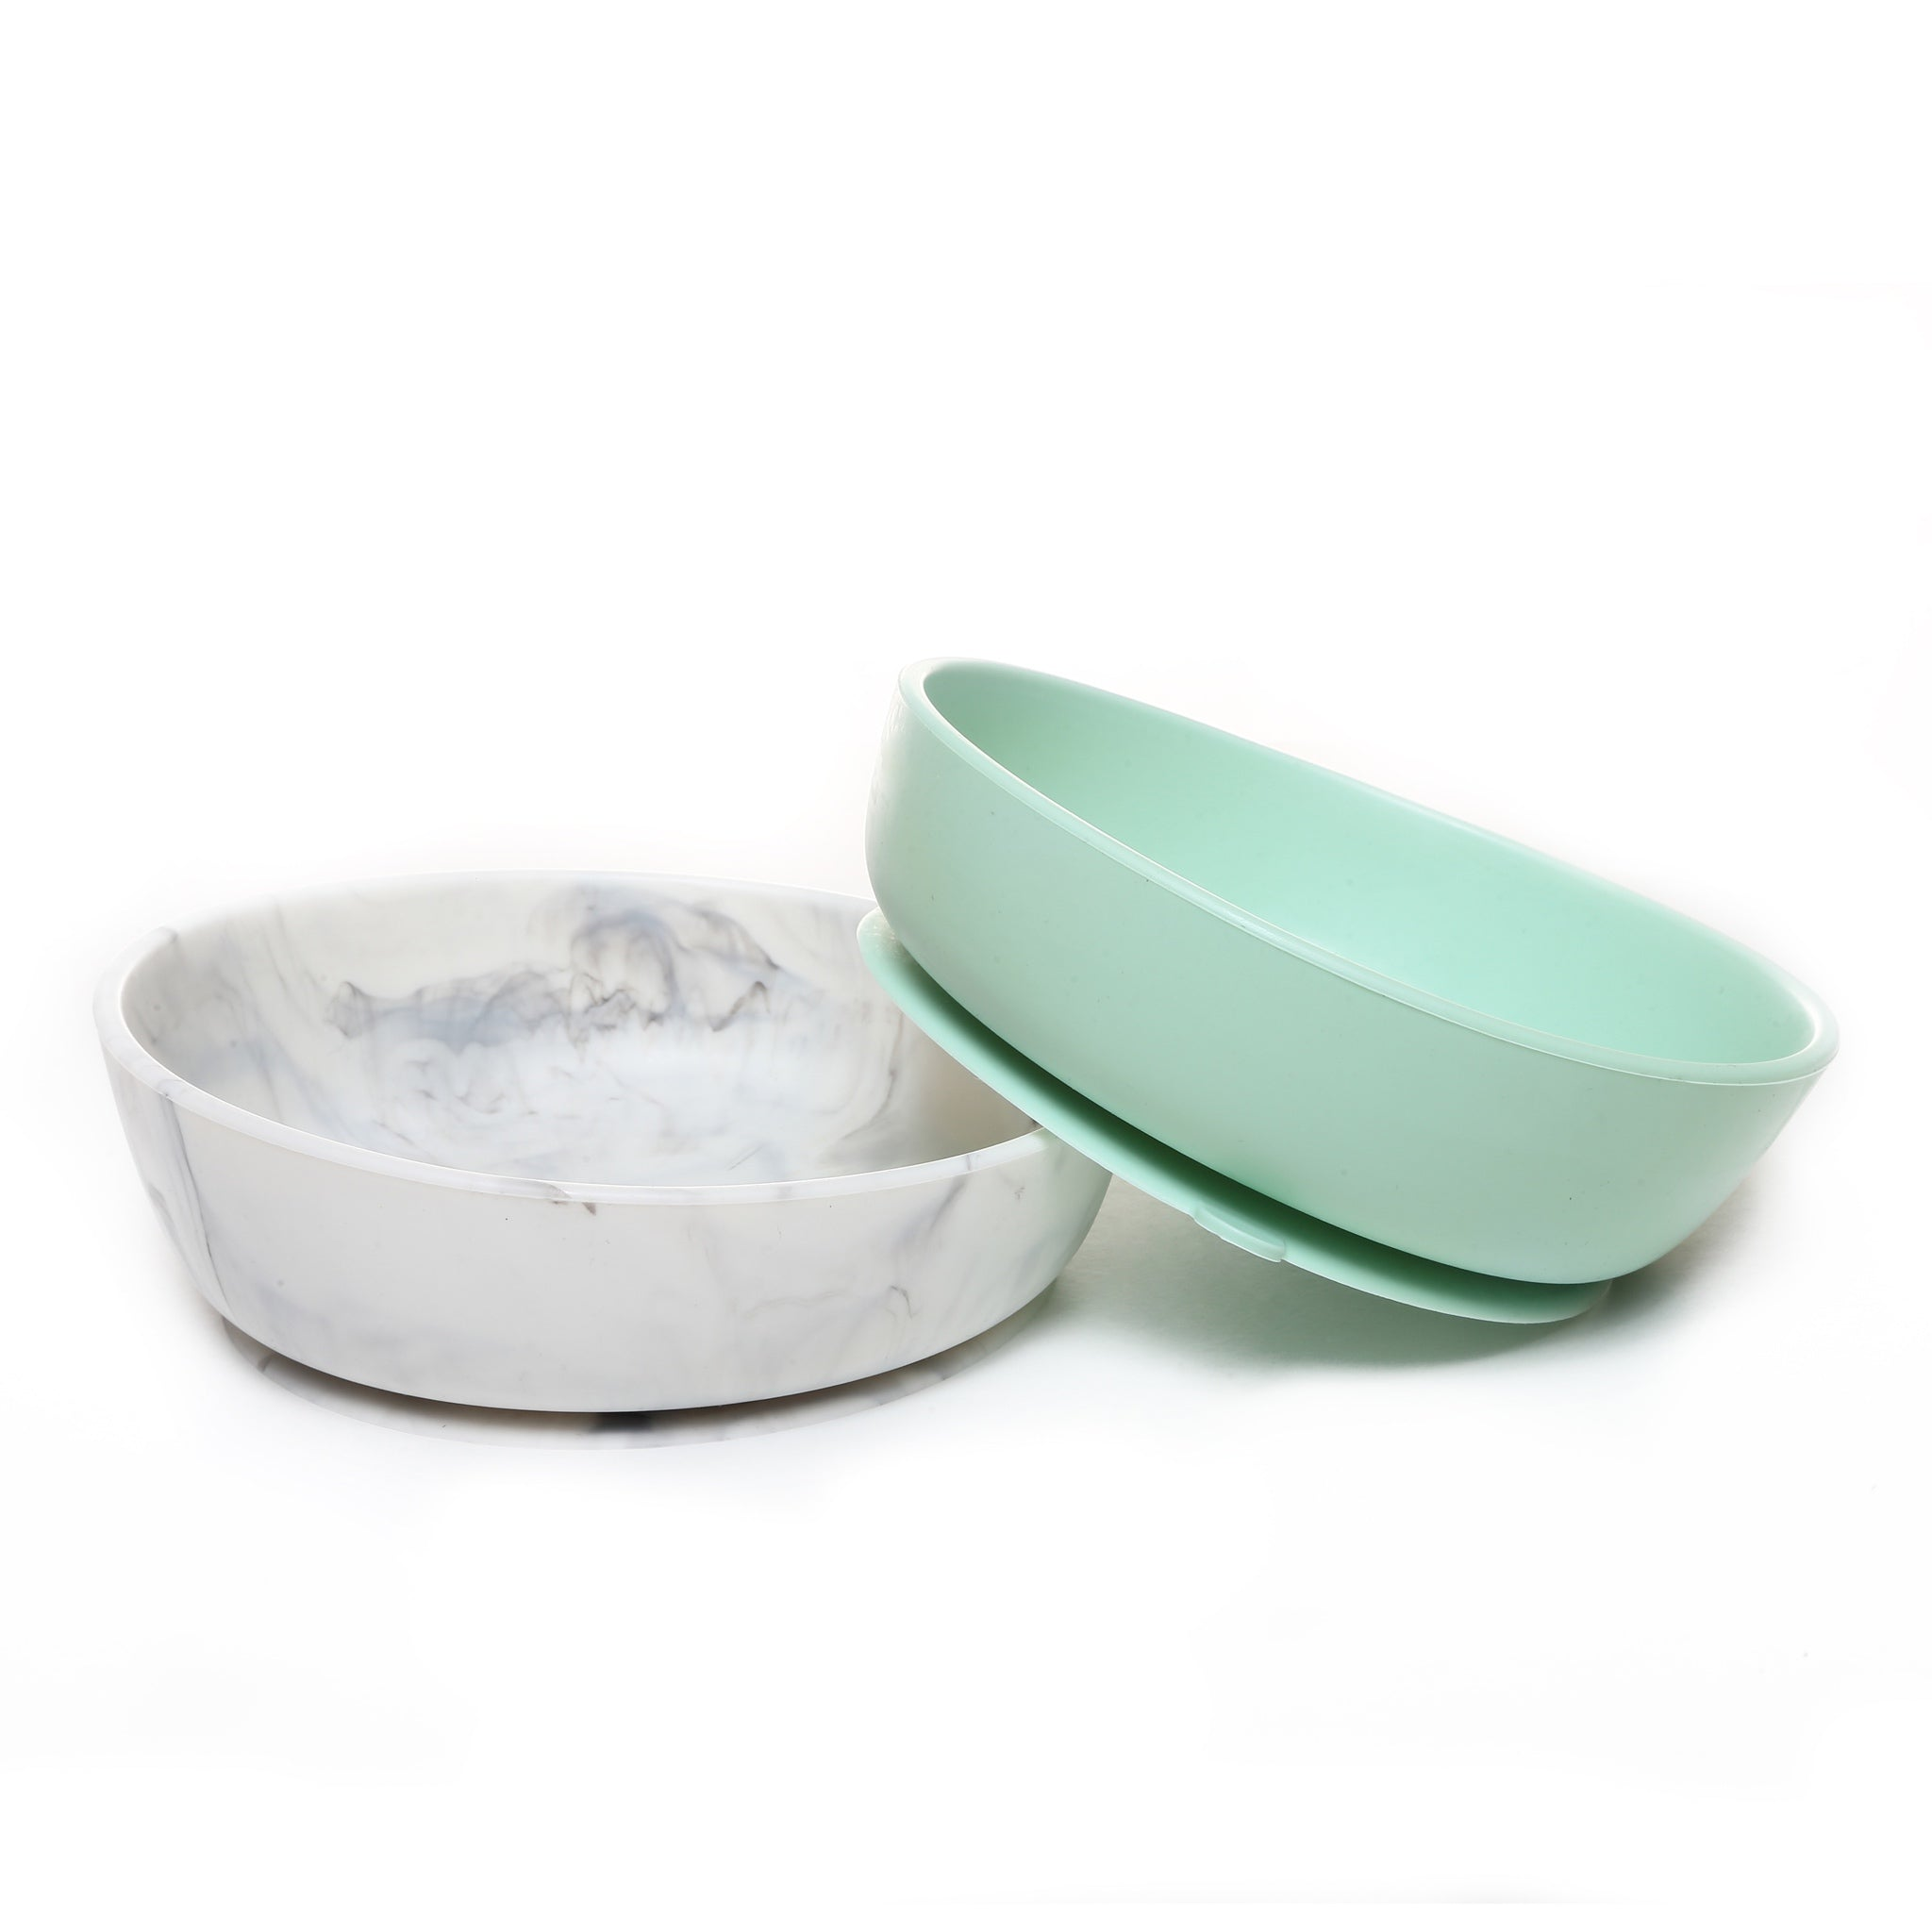 Silicone Baby Bowl Set - Mint & Marble